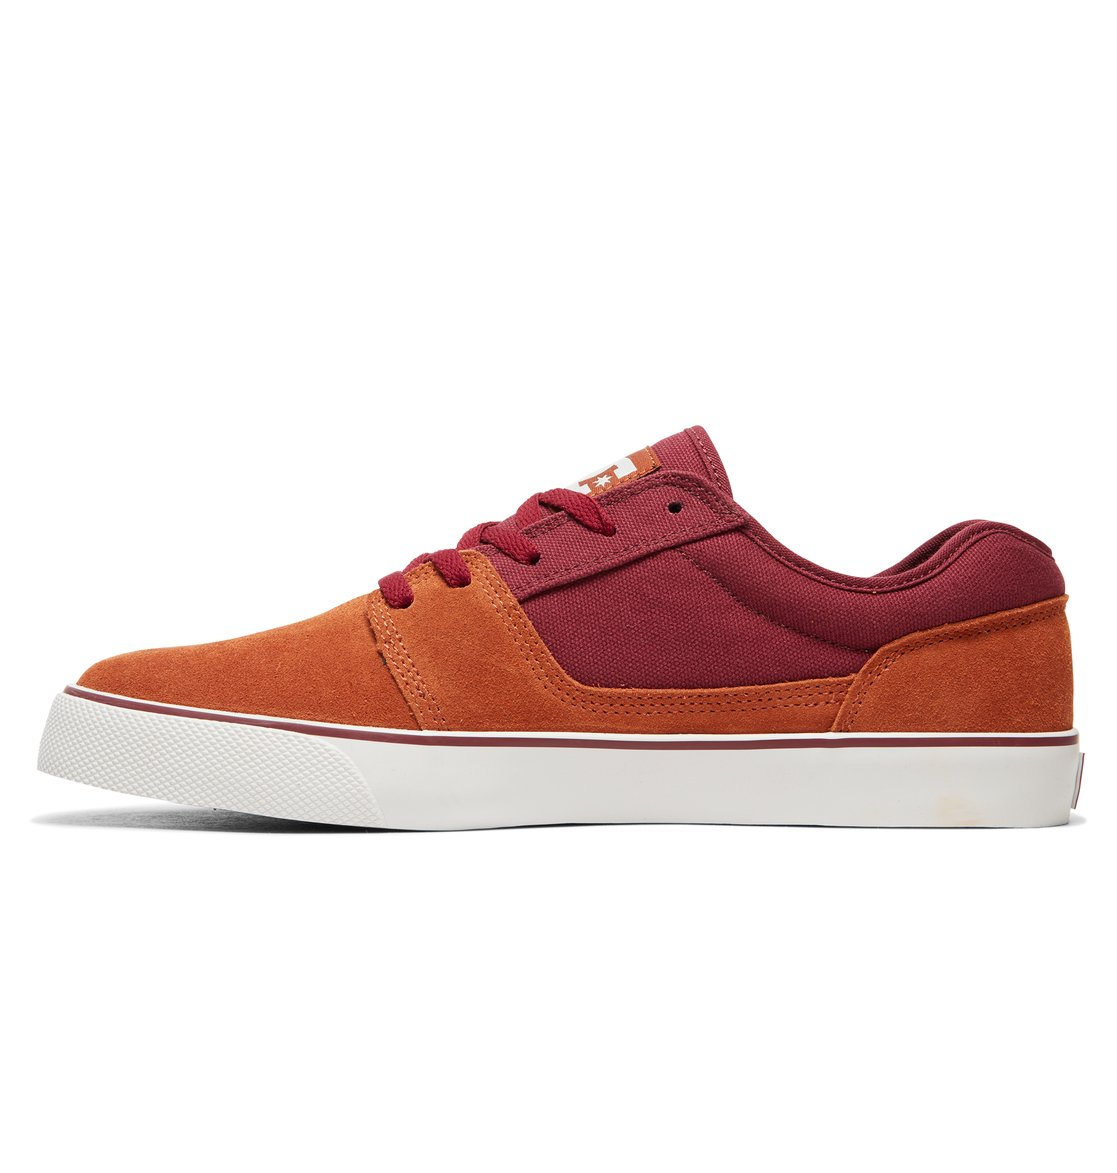 DC-Shoes-Tonik-Baskets-pour-Homme-302905 miniature 35